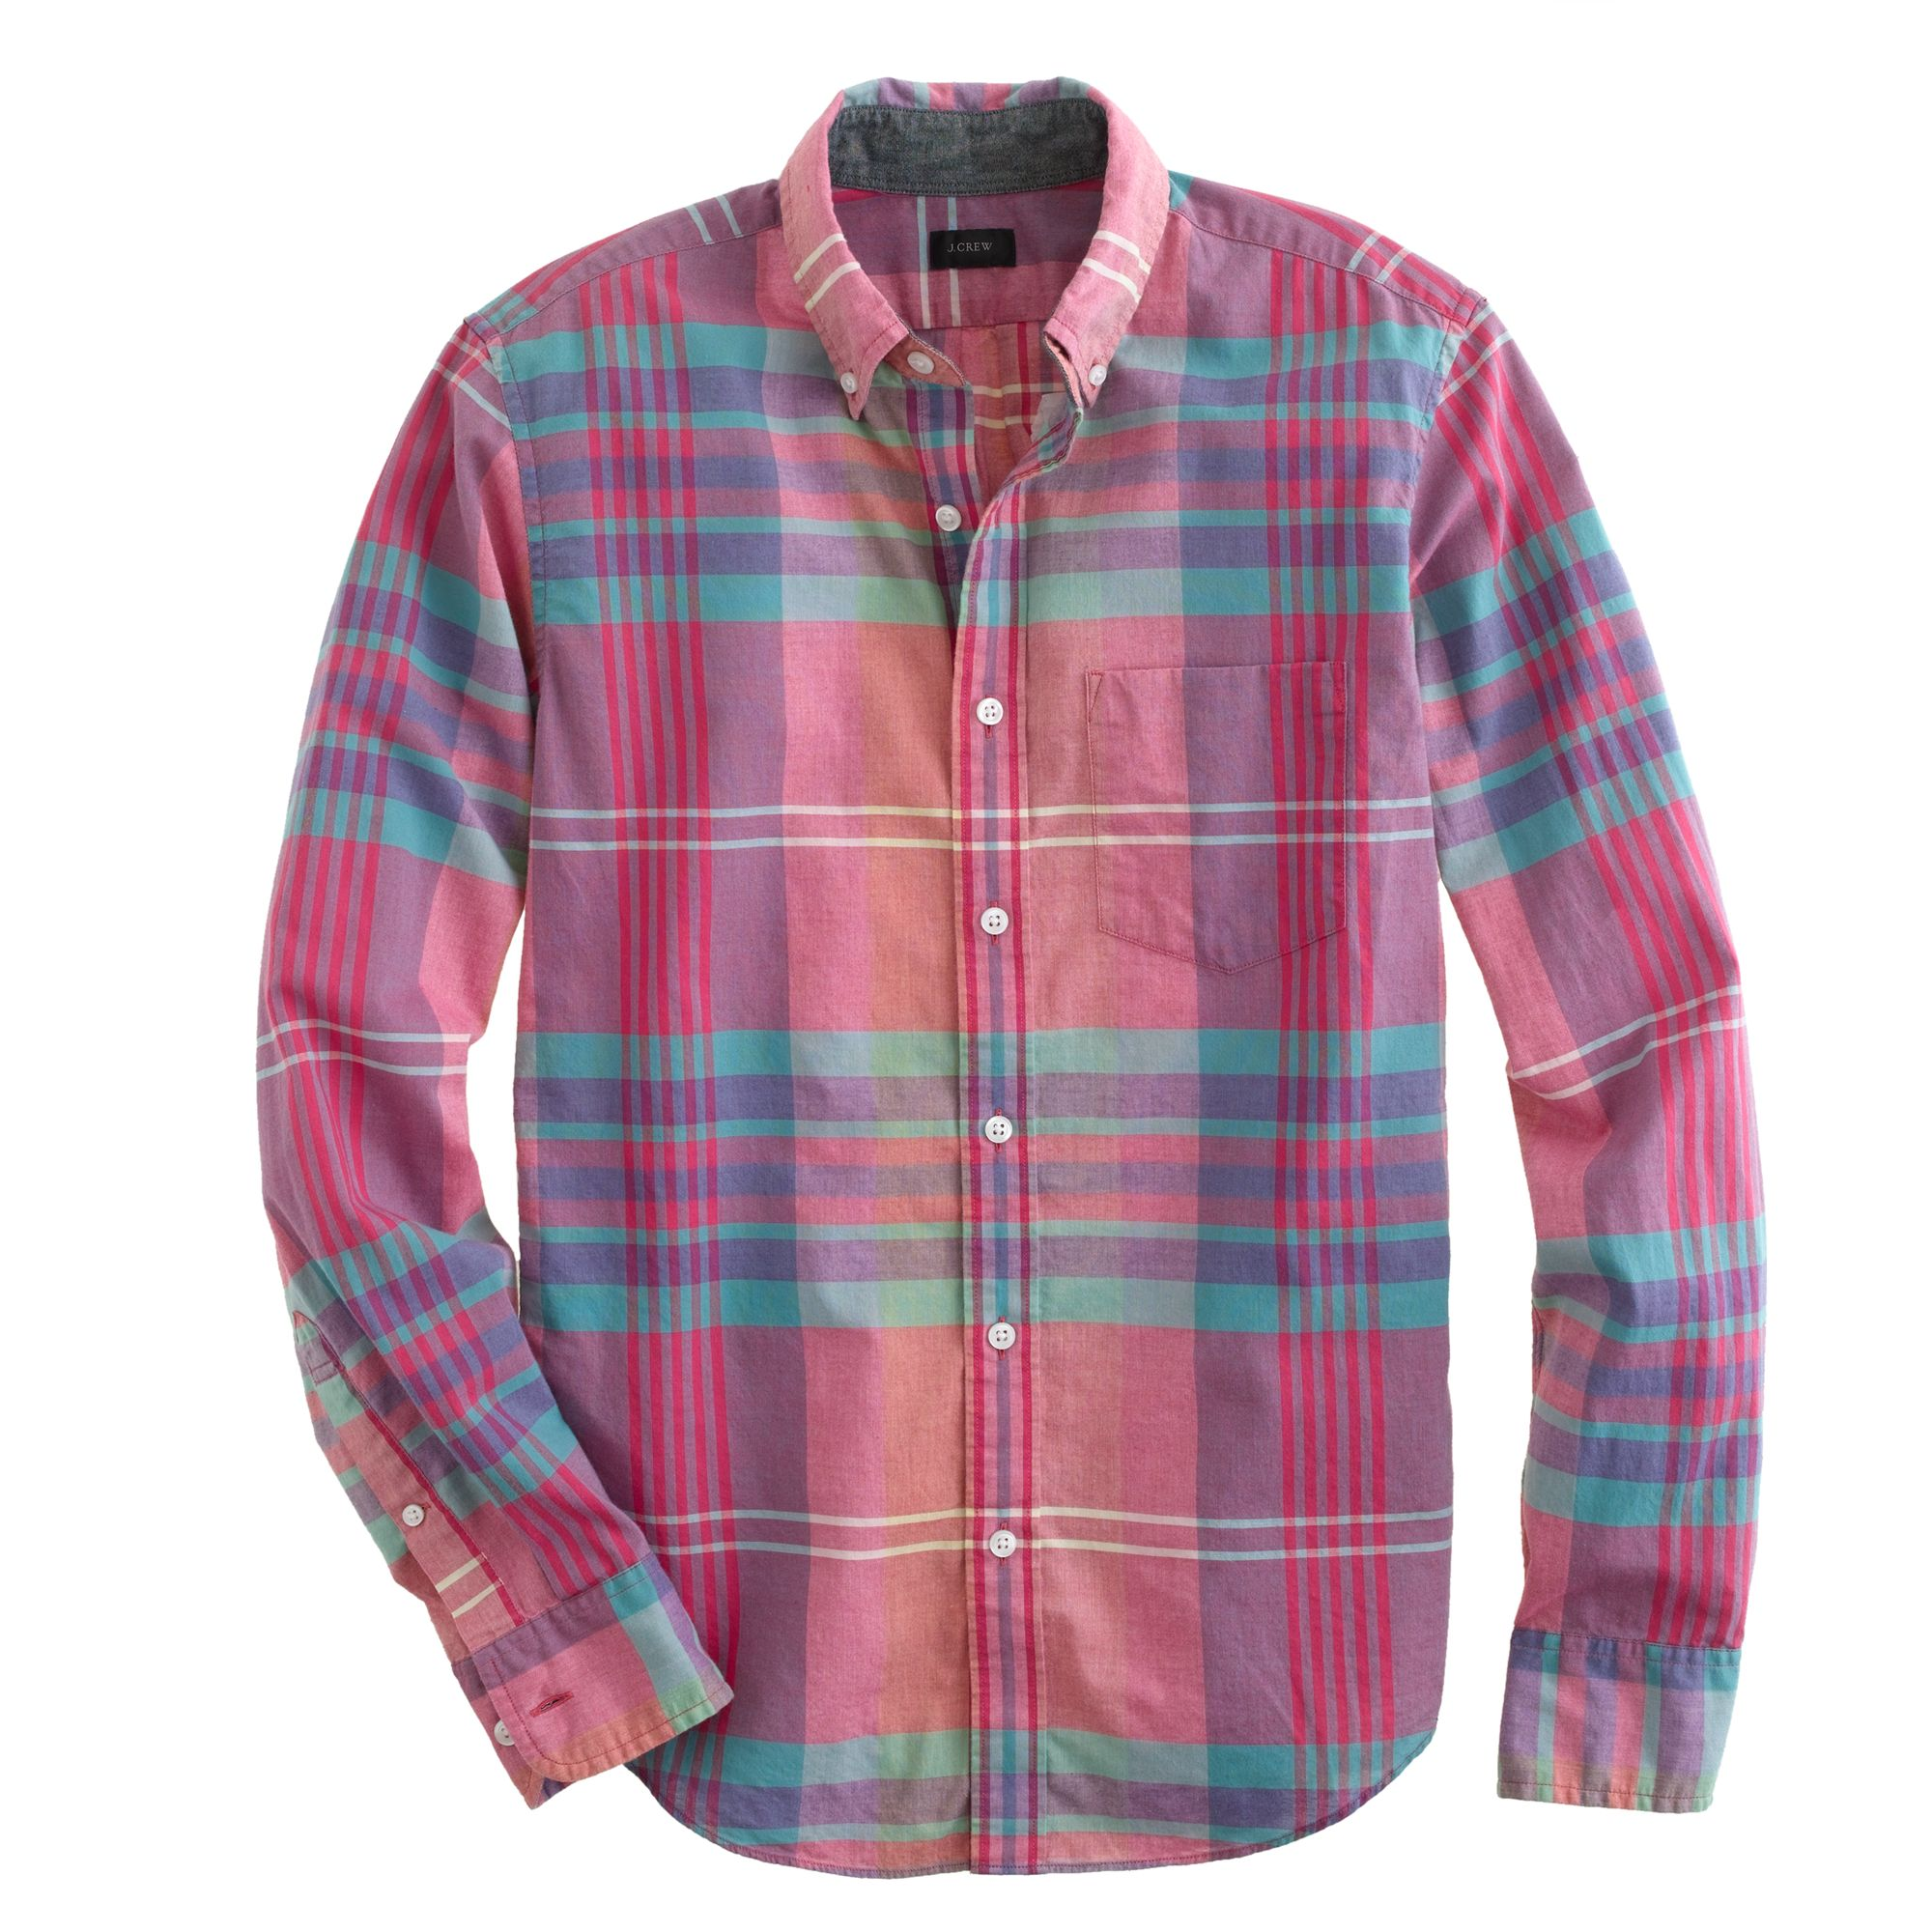 slim indian cotton shirt in flash pink plaid in